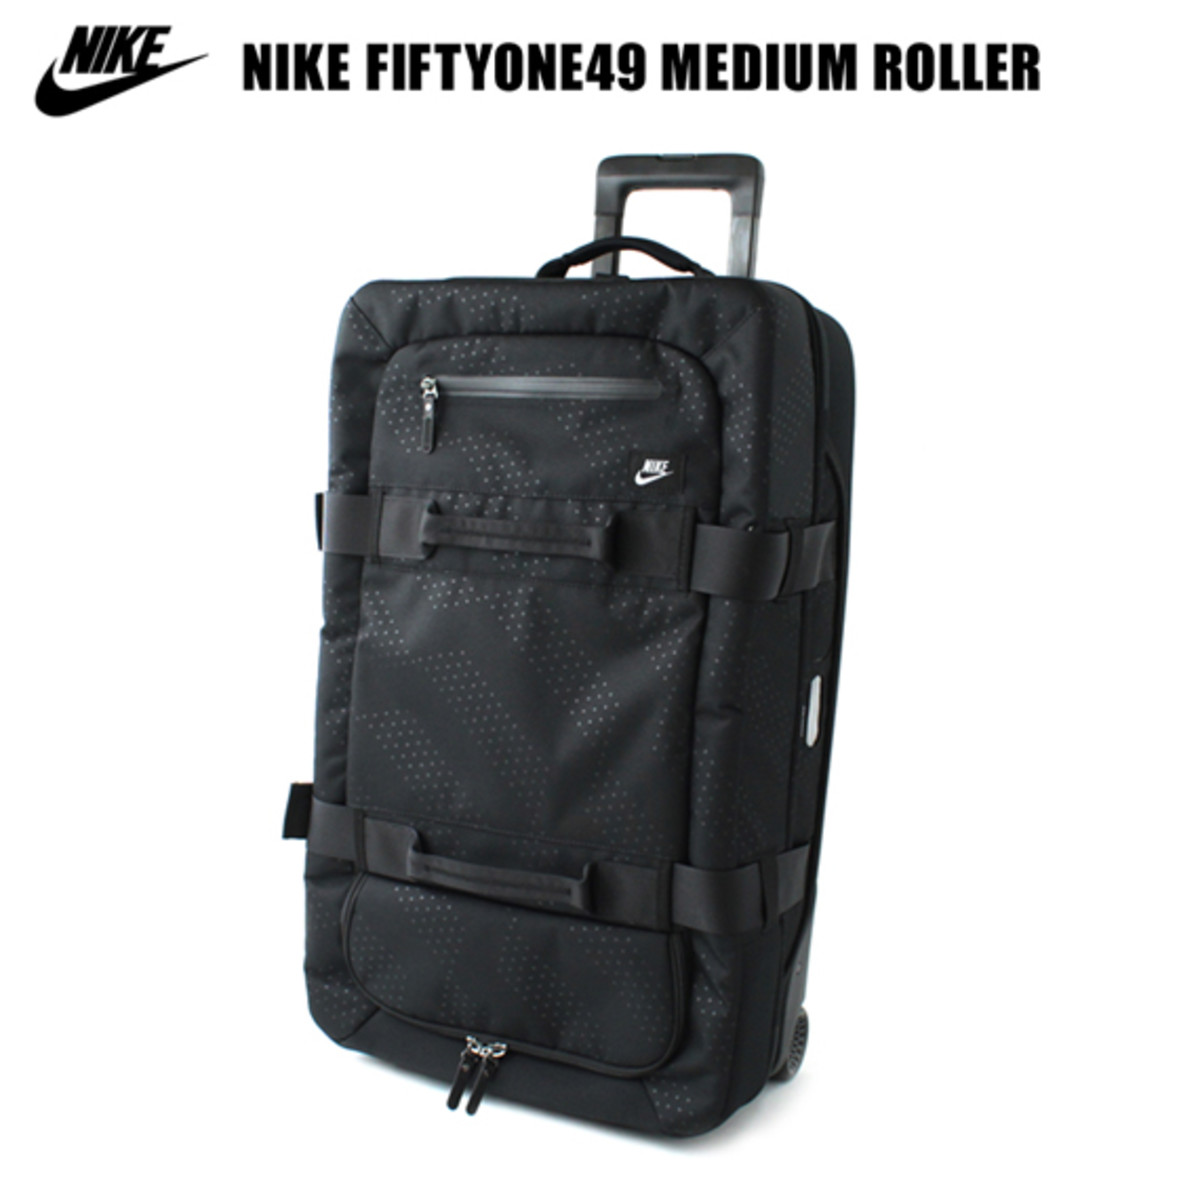 nike-fiftyone49-luggage-collection-04